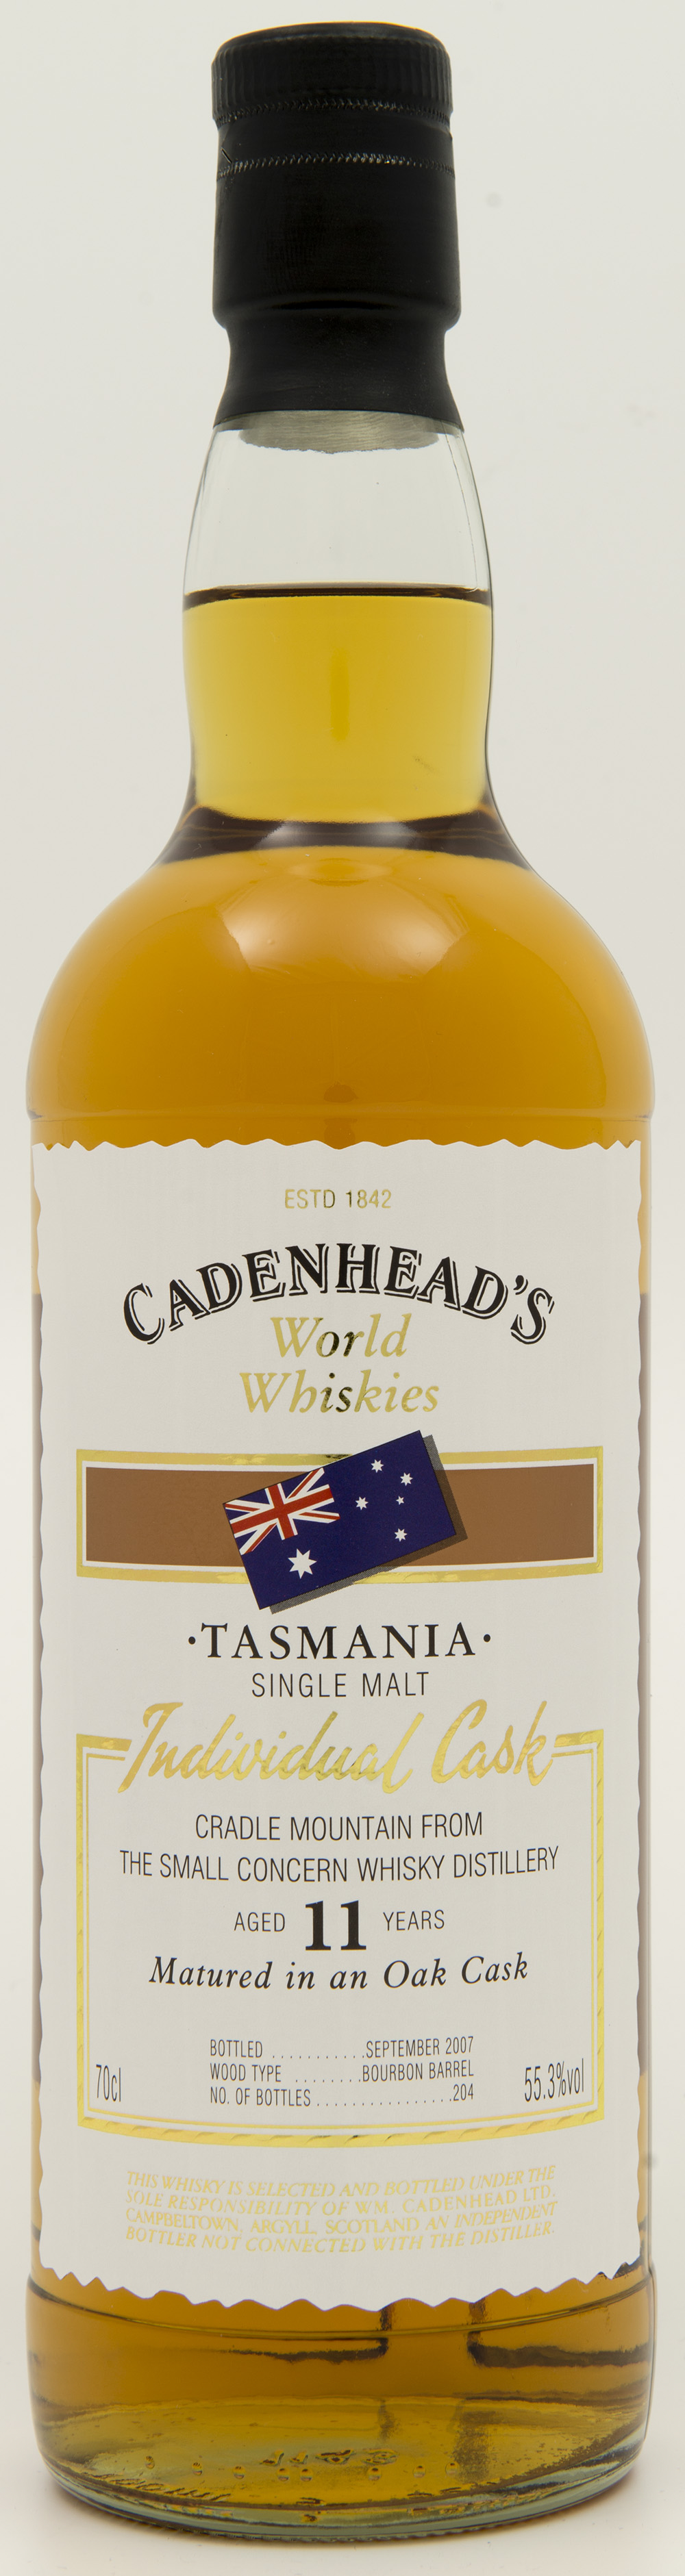 Billede: DSC_4809 - Cadenheads World Whiskies - Cradle Mountain from the Small Concern Distillery - 11 years - bottle front.jpg